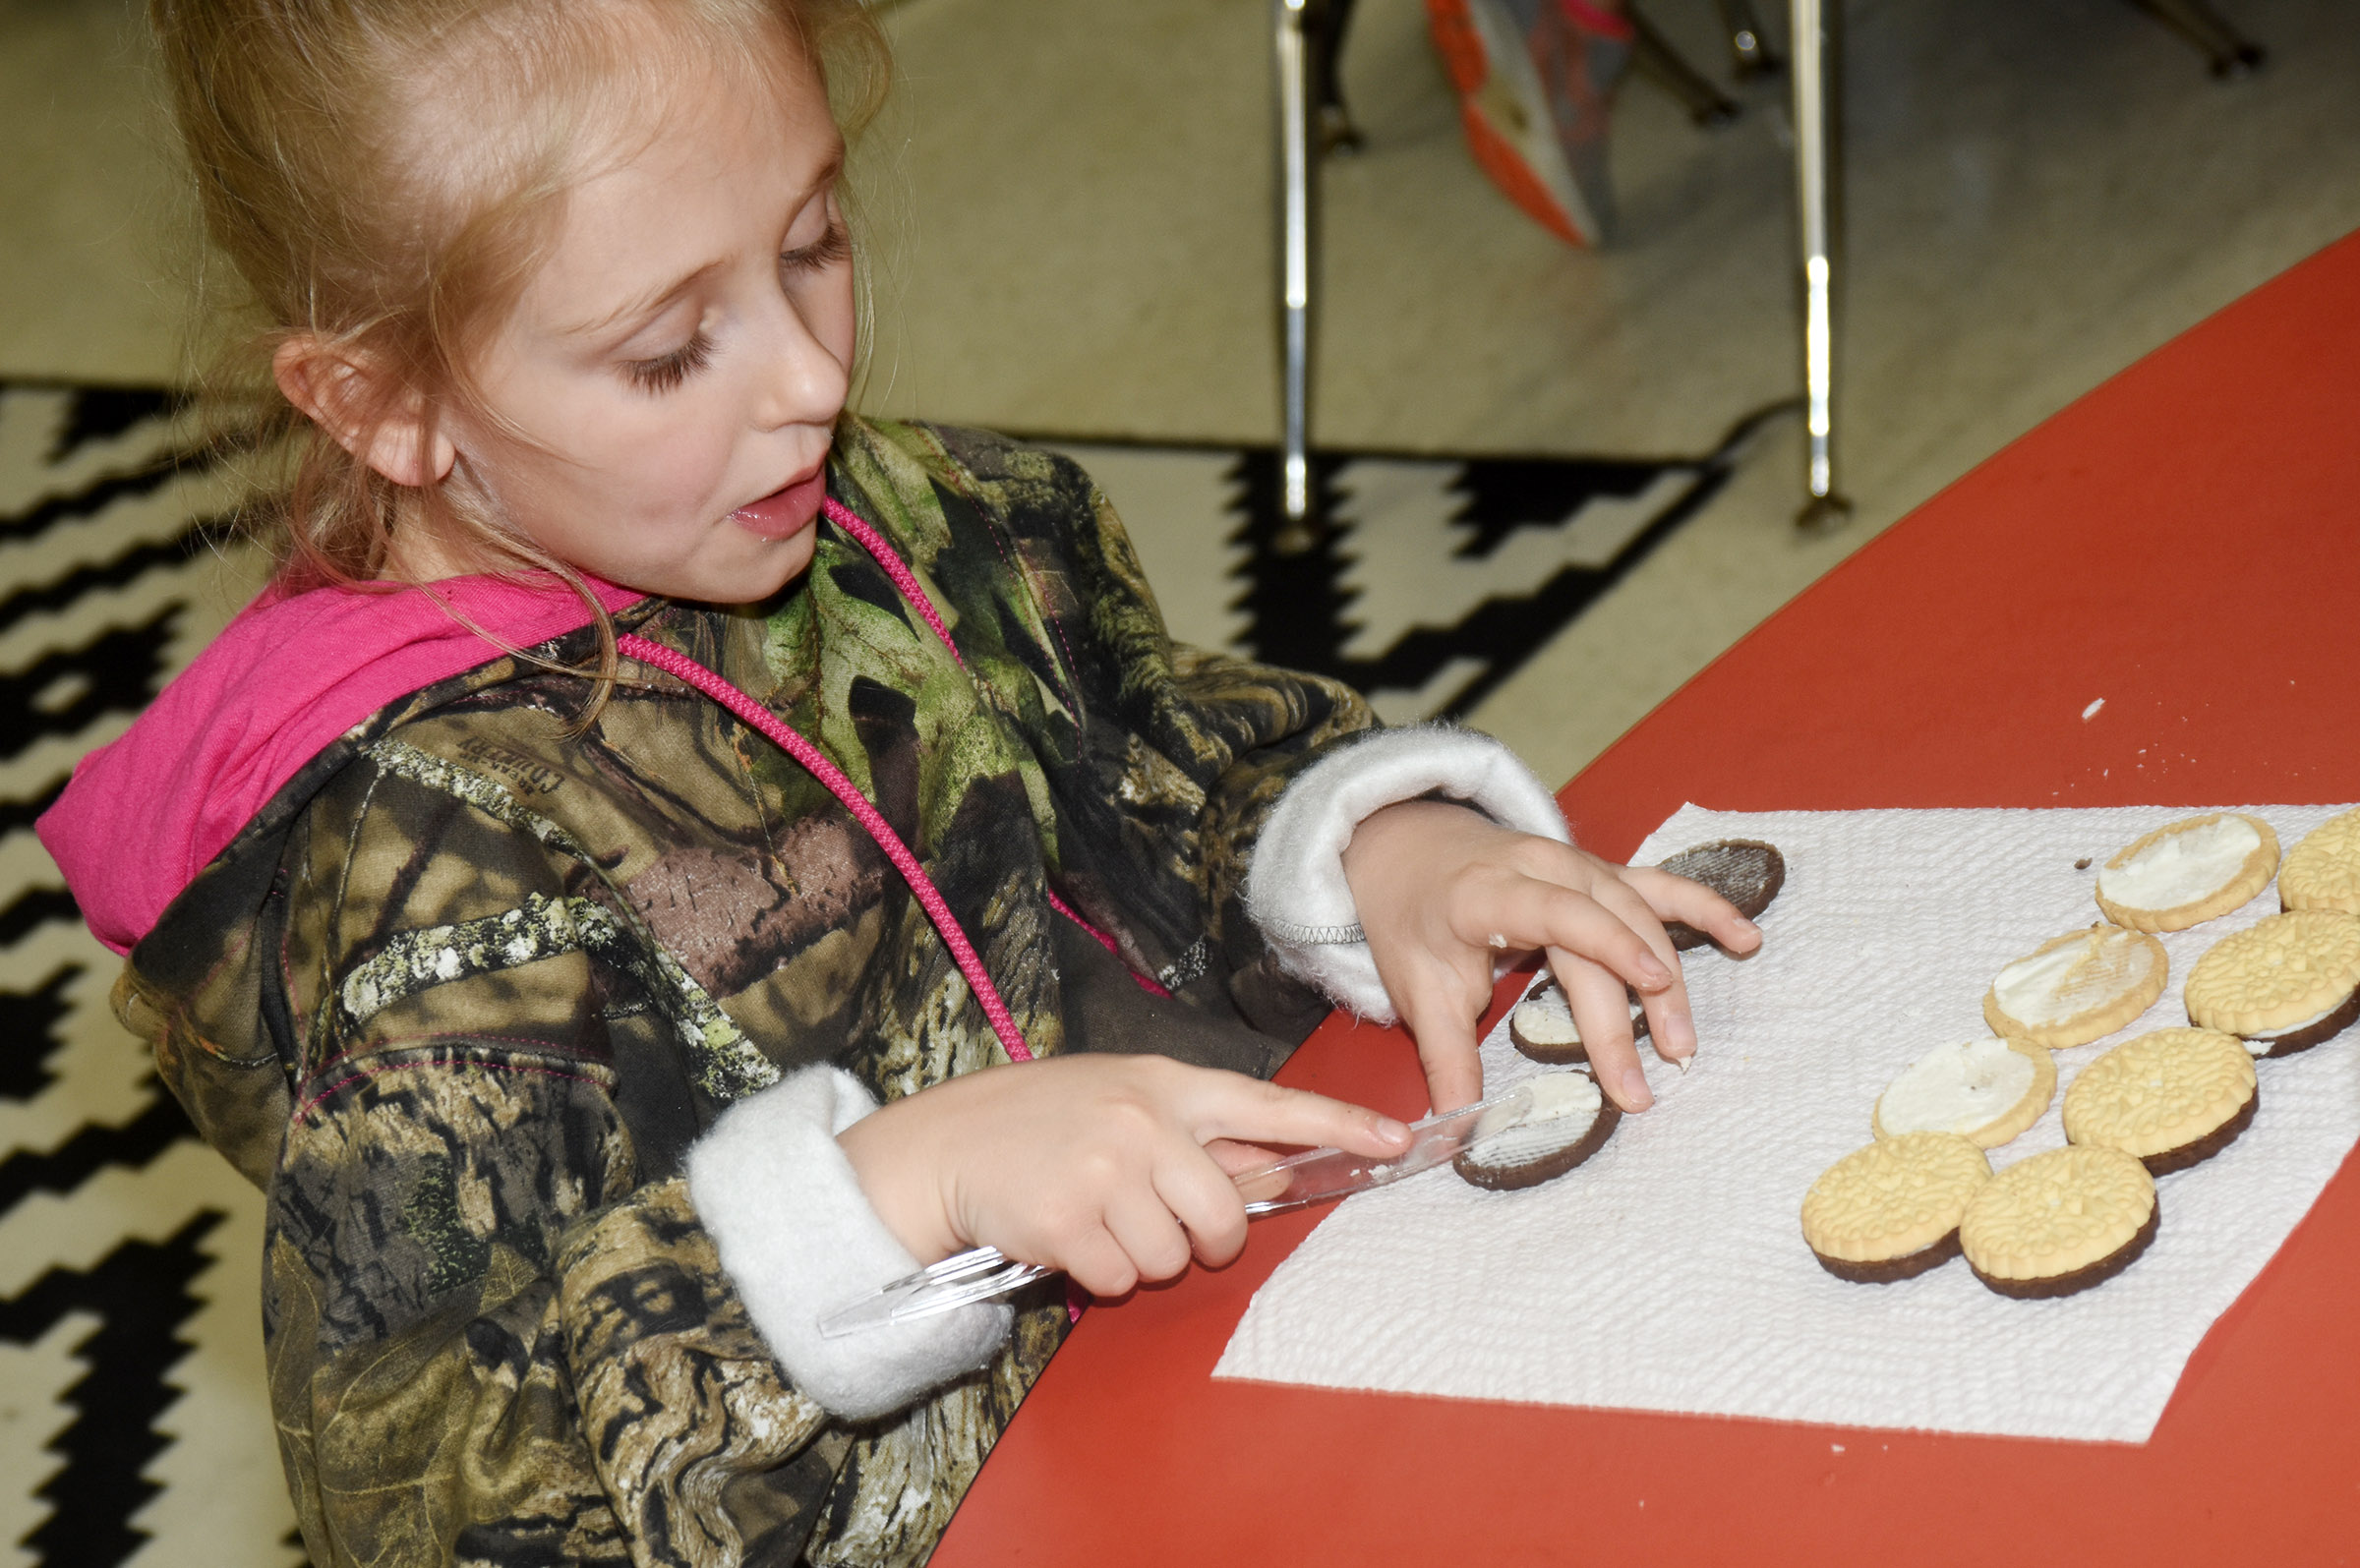 CES first-grader LeeAnna Garvin makes the phases of the moon by using cream filled cookies.